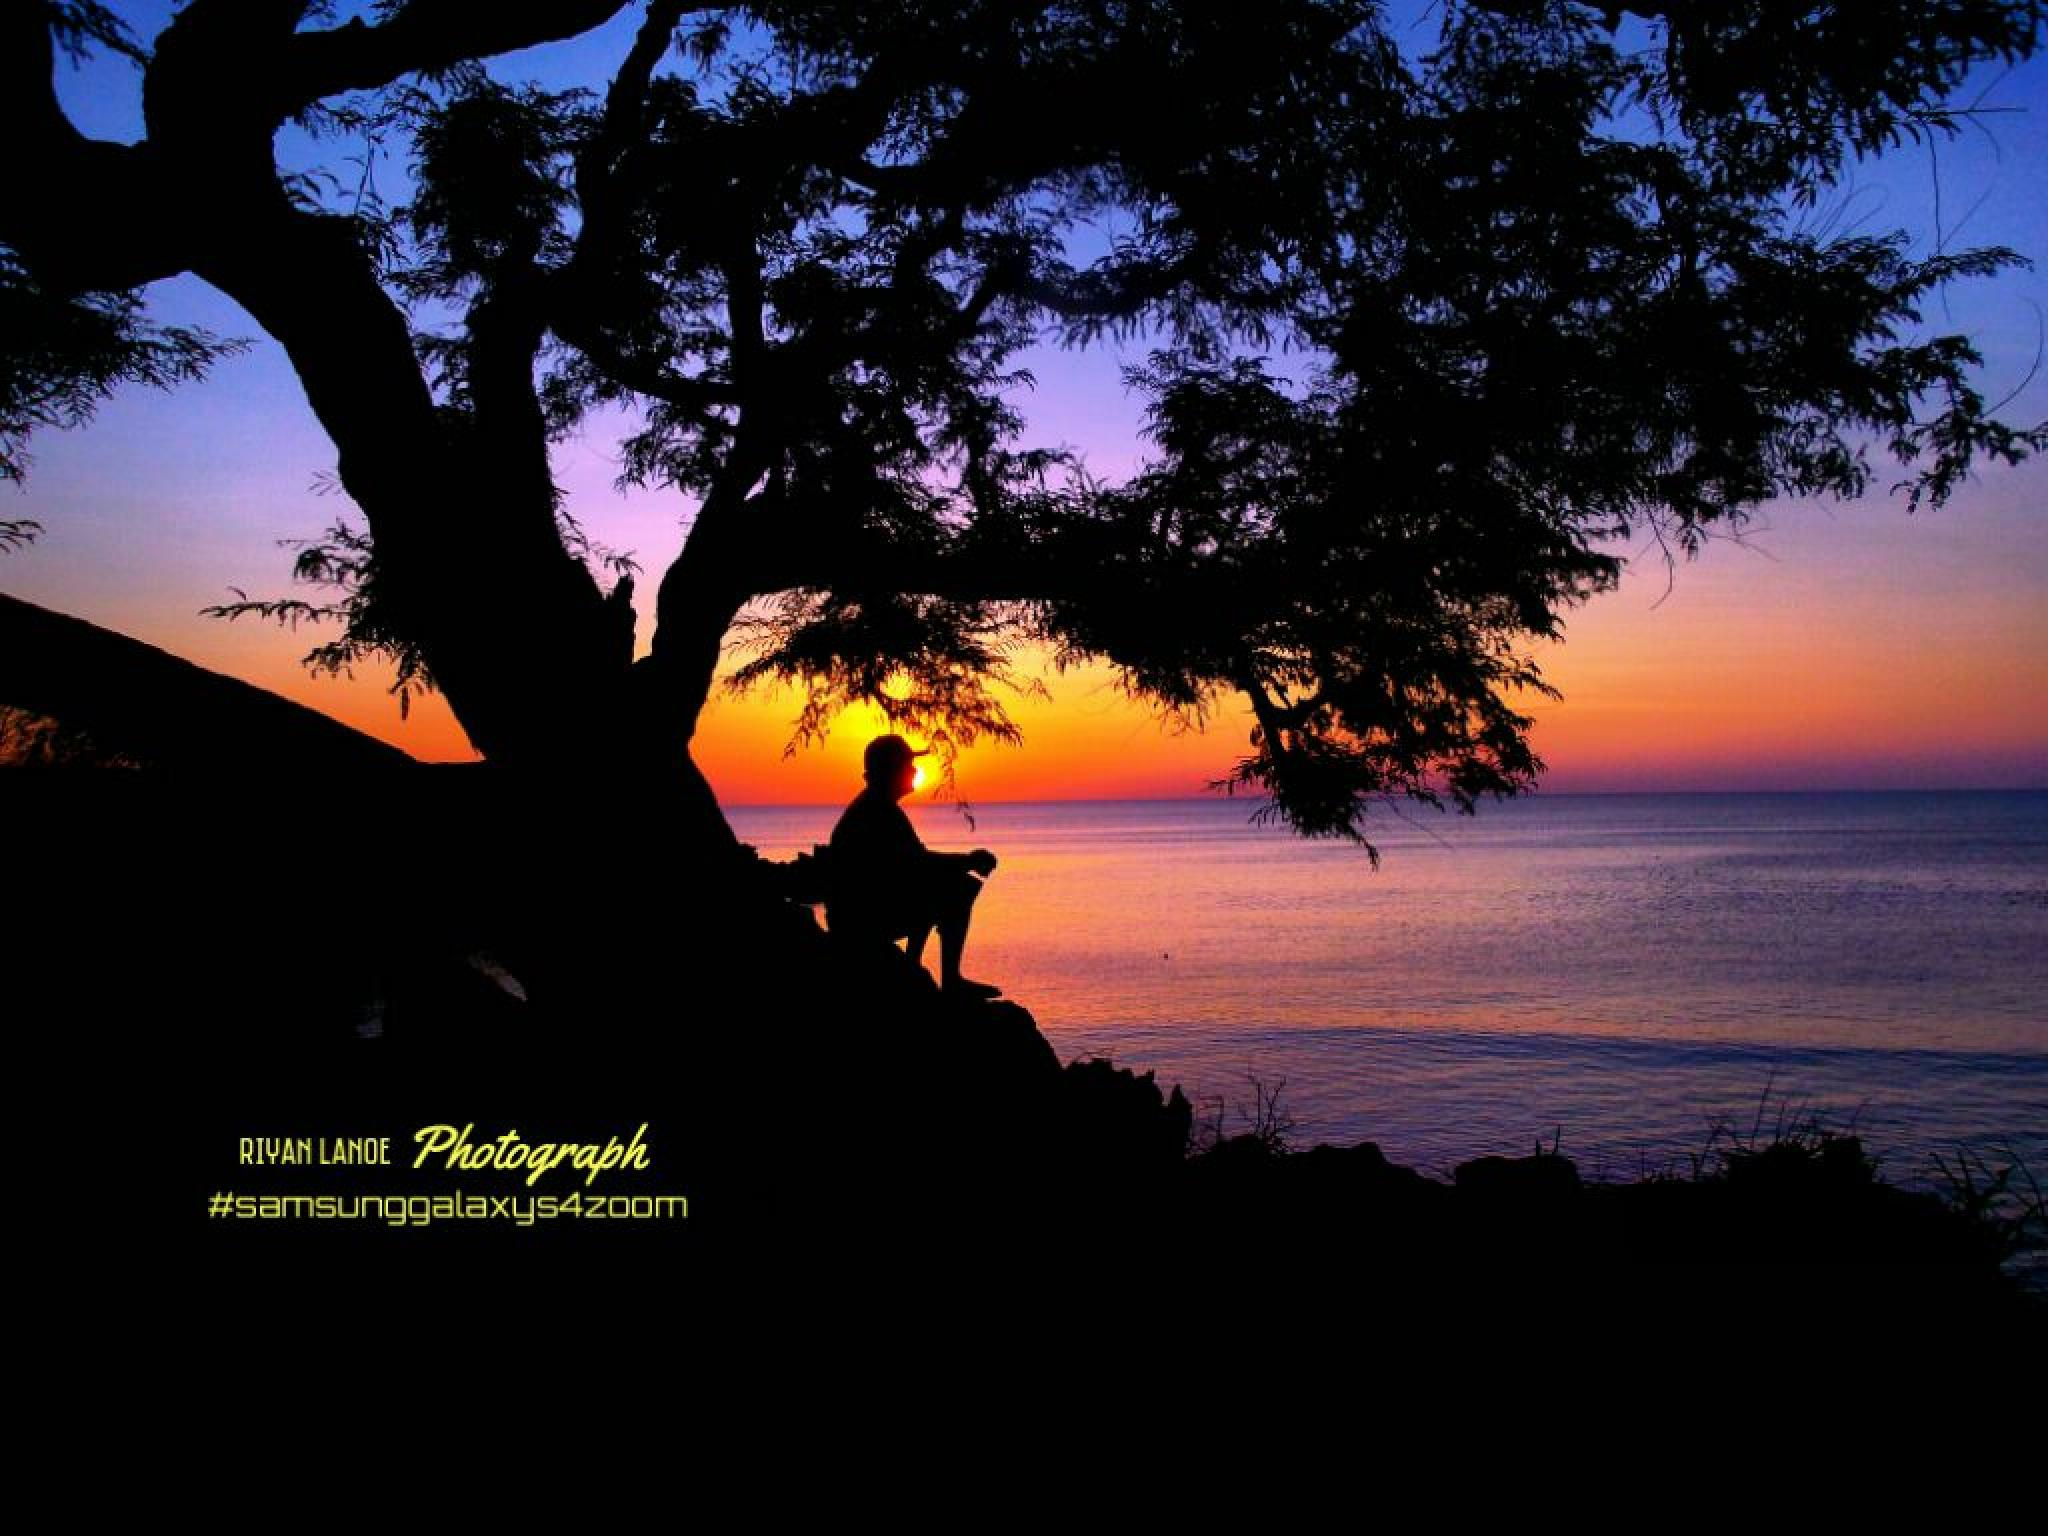 beautiful sunset in rote ndao island by riyan lanoe